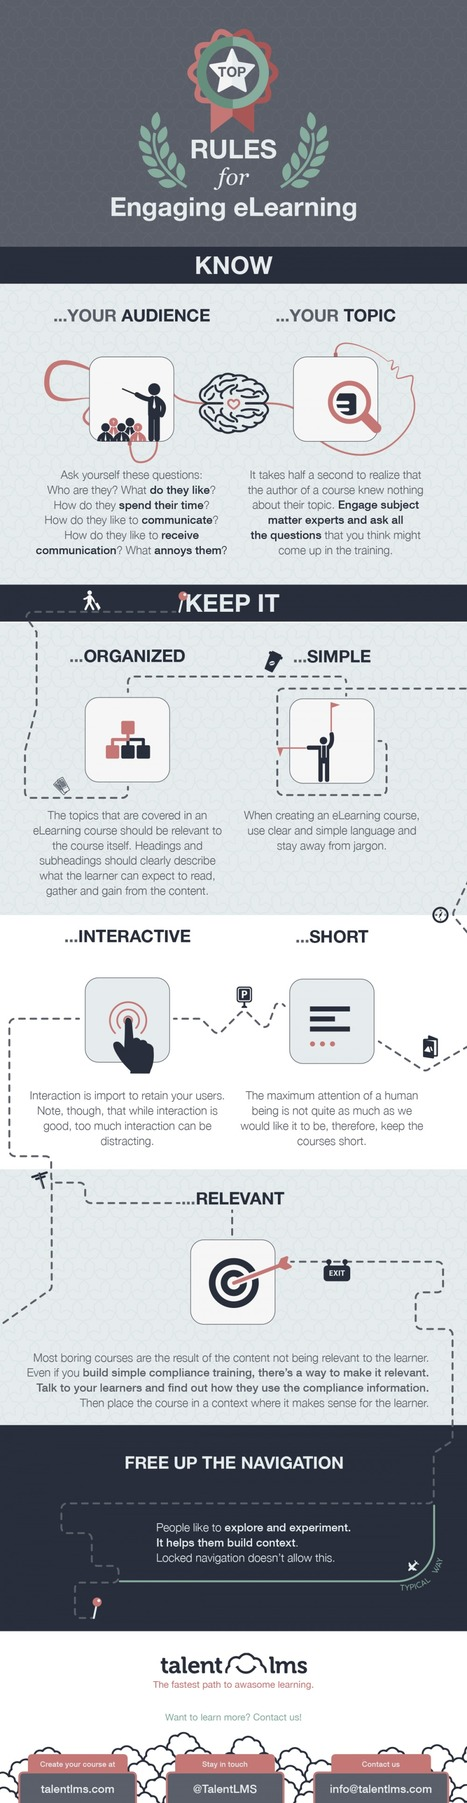 Top Rules of Engaging eLearning - Infographic | English Language Classroom 2.0 | Scoop.it